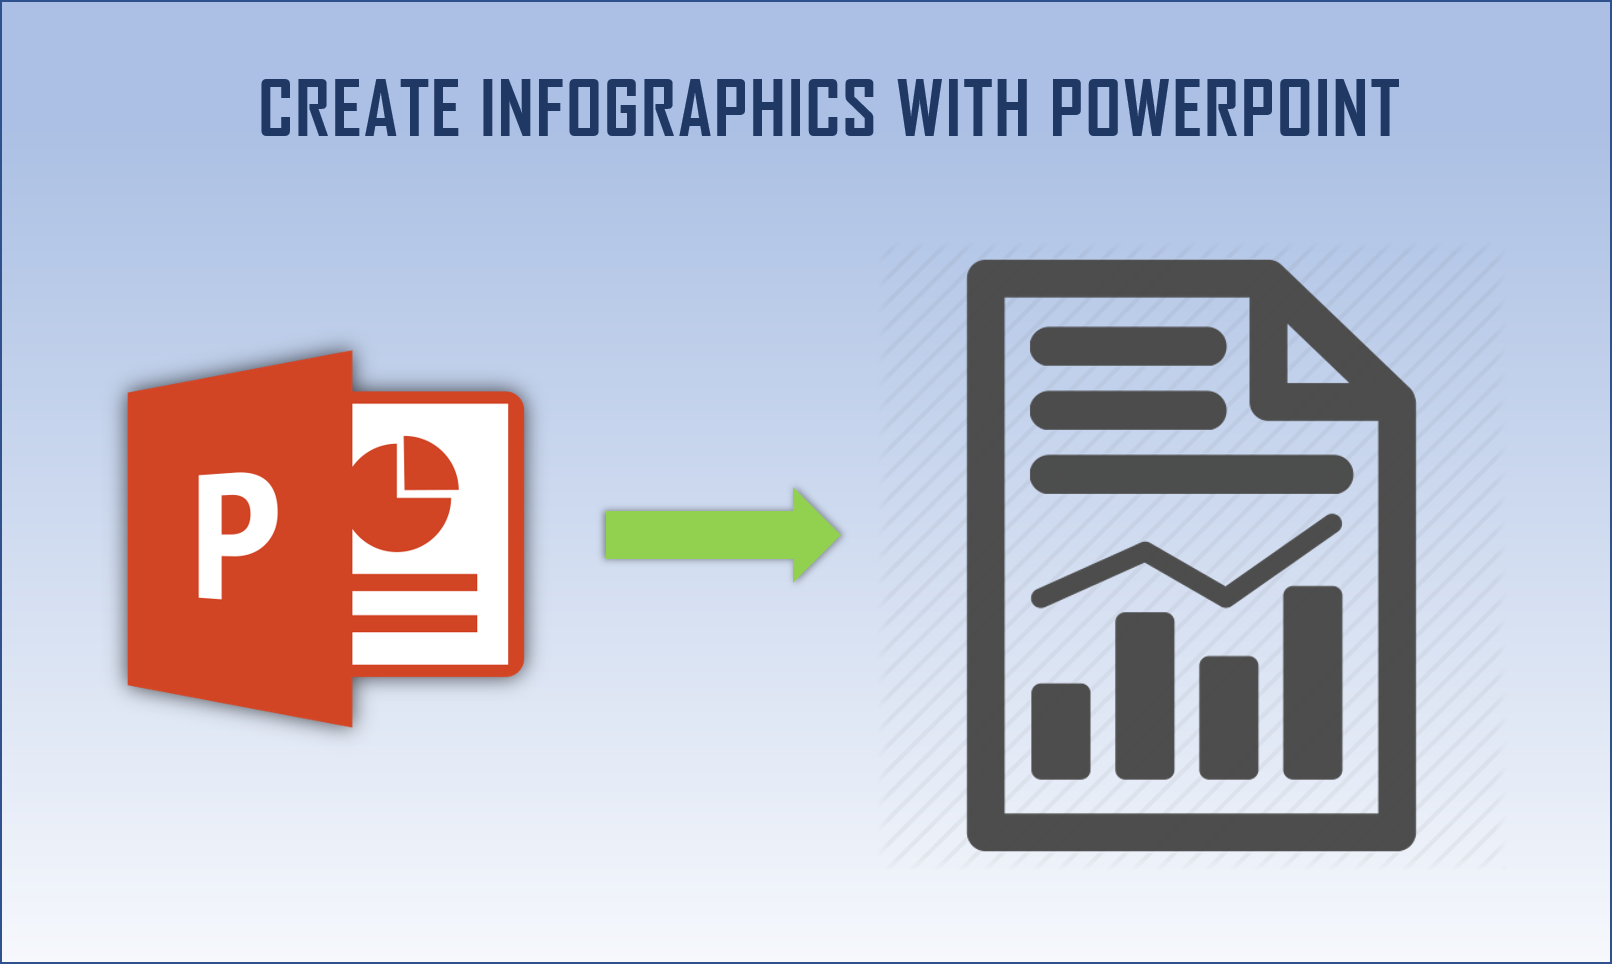 Creating infographic in powerpoint